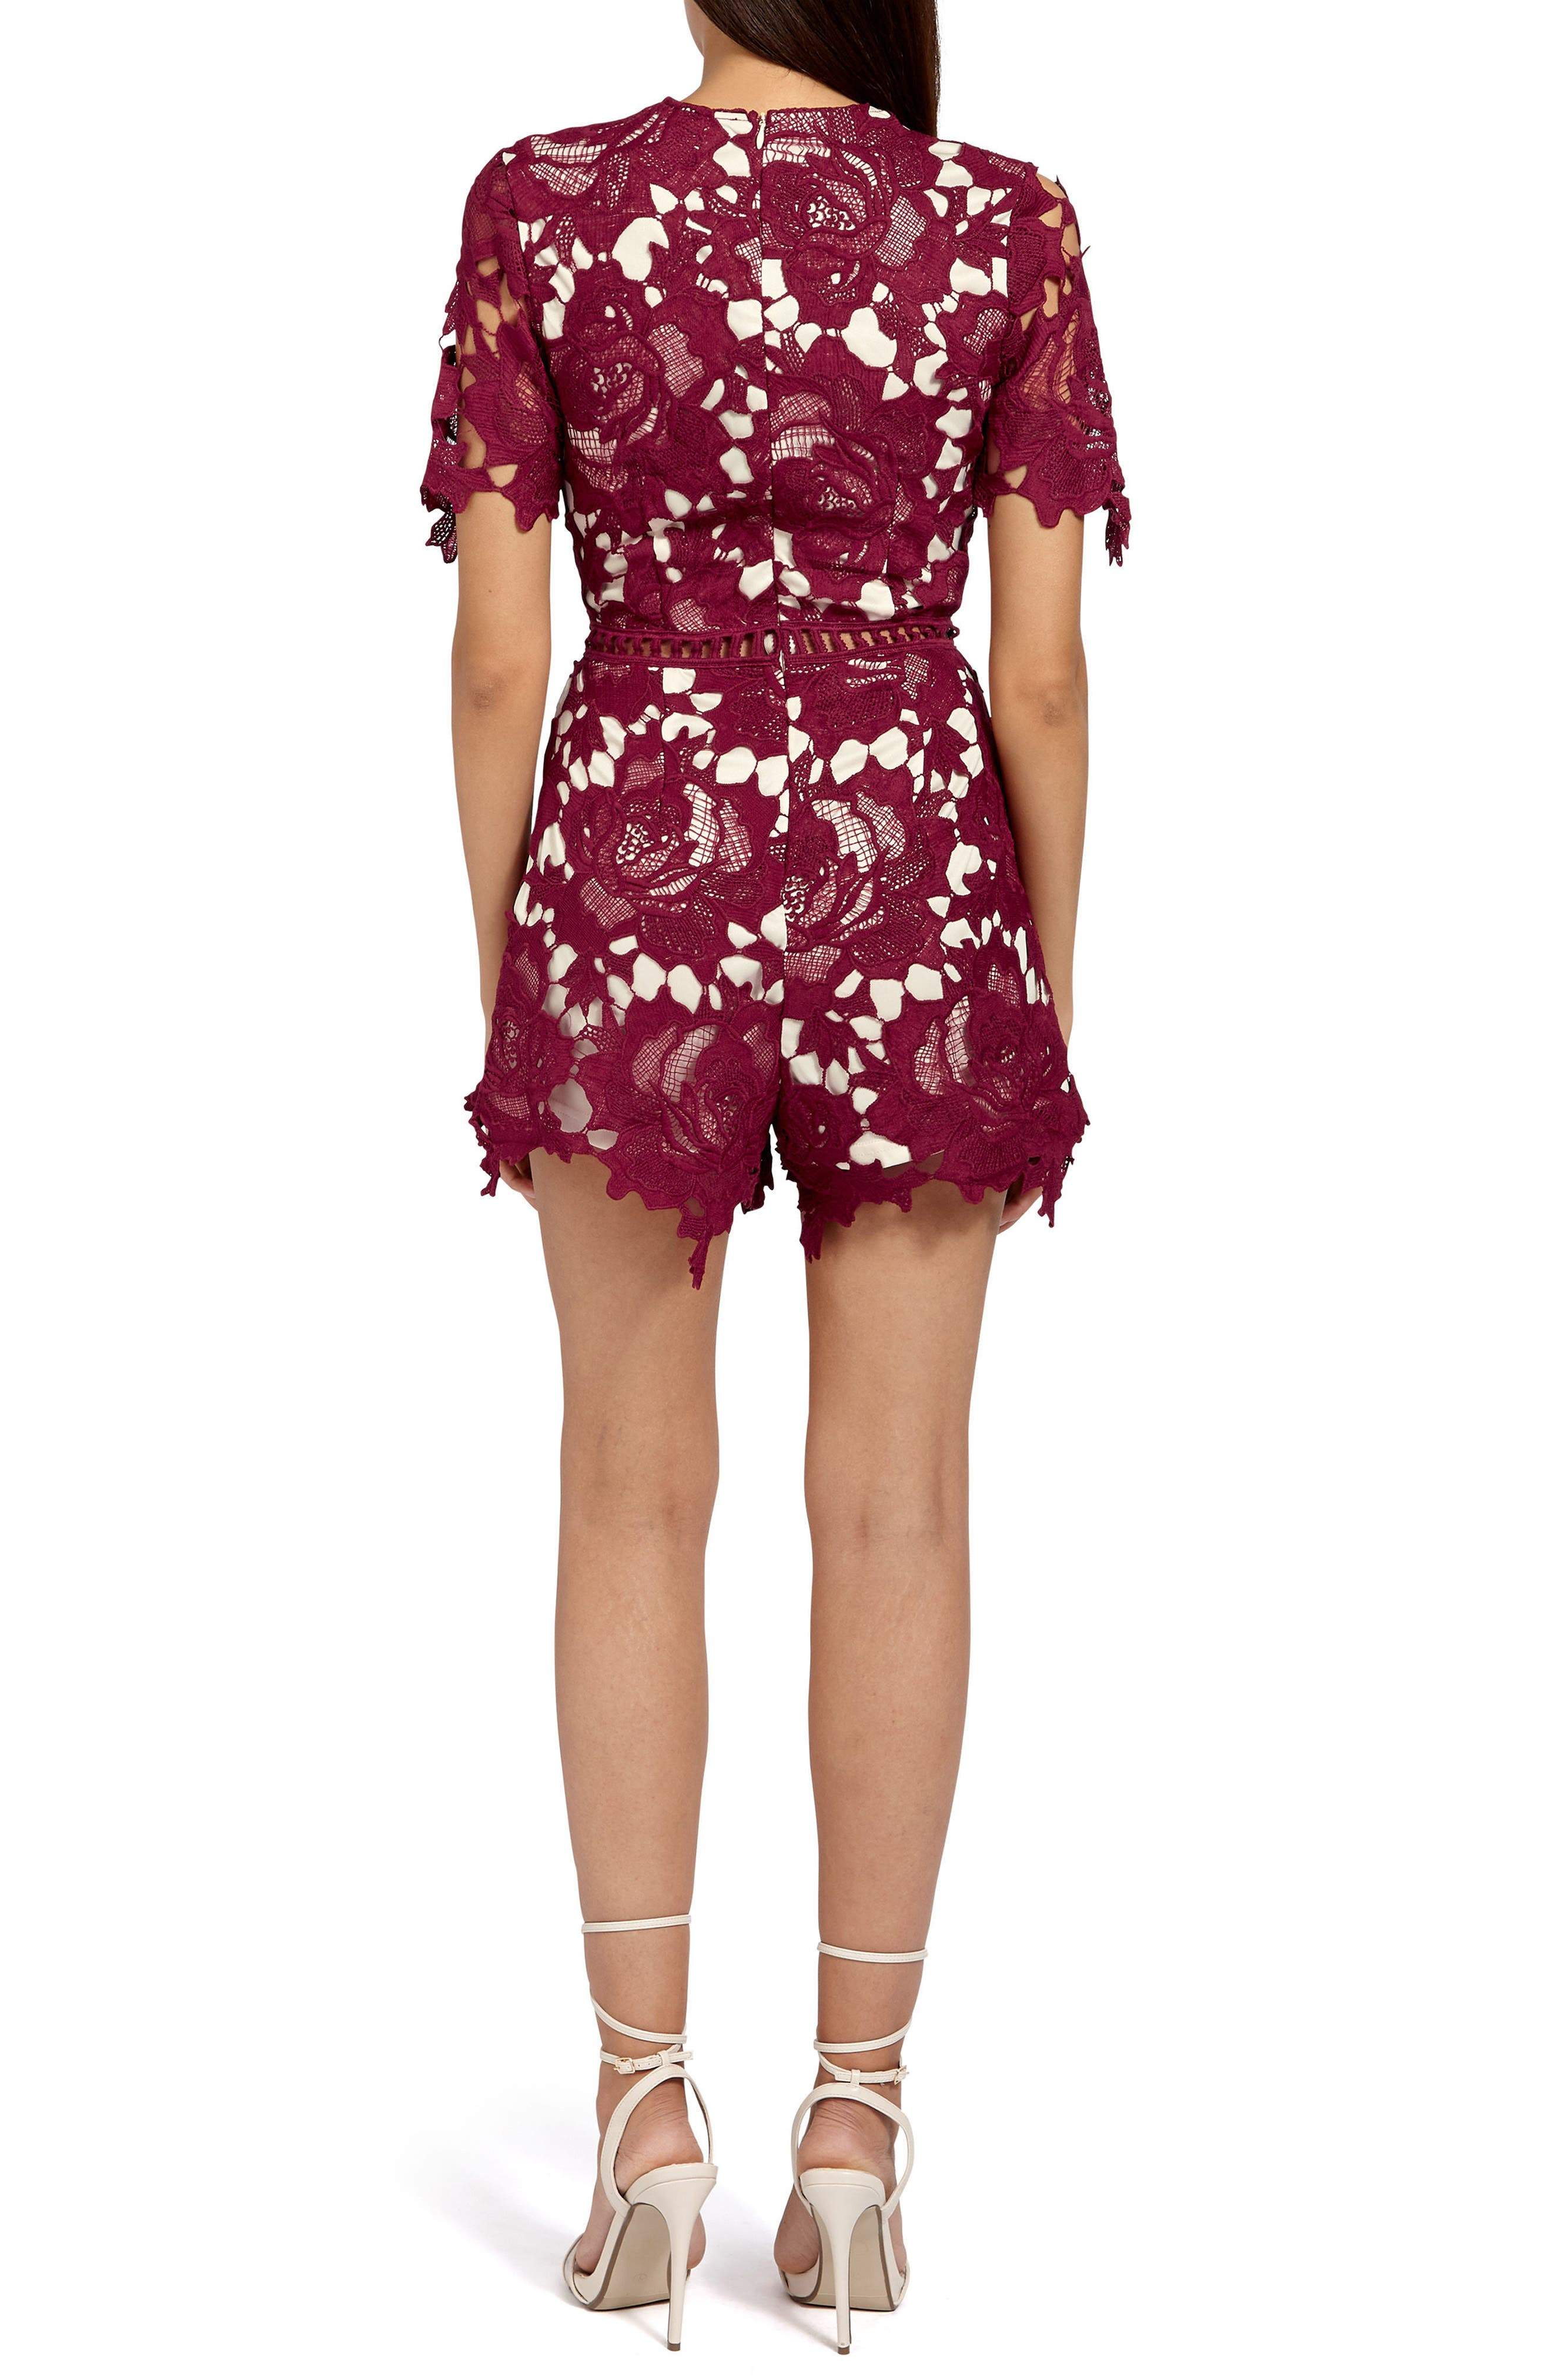 Ladder Stitch Lace Romper,                             Alternate thumbnail 2, color,                             Burgundy